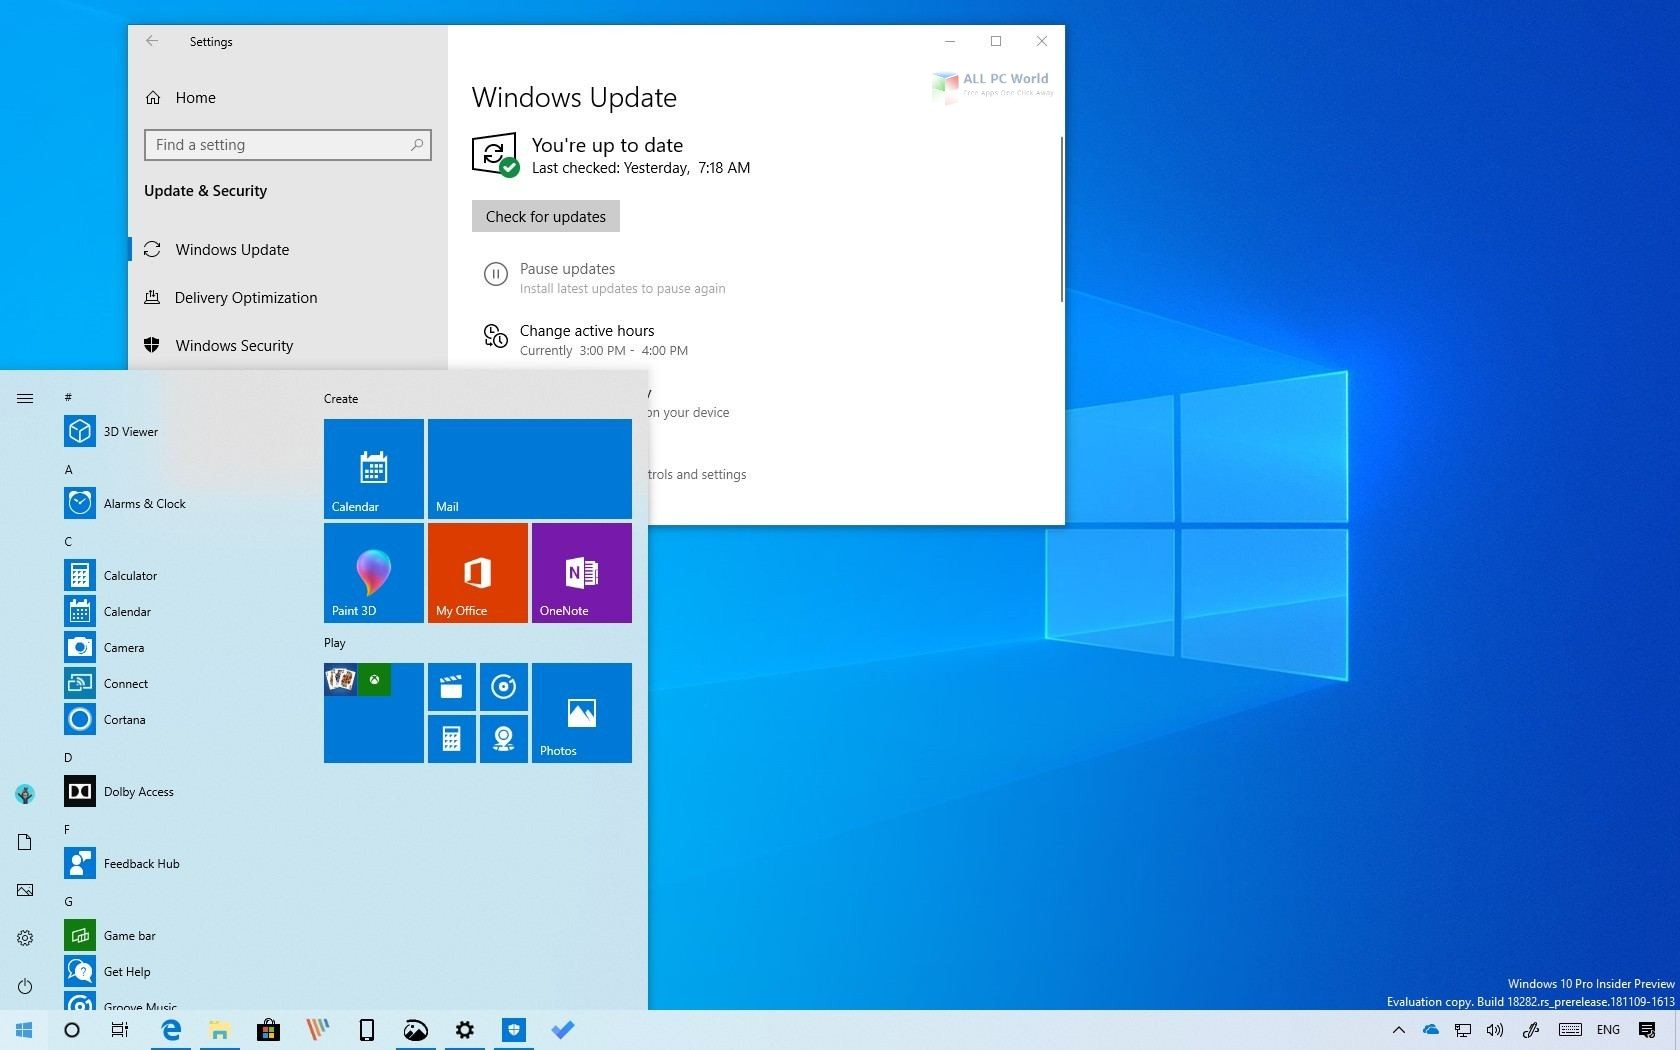 Windows 10 19H1 Lite Edition v9 2019 Free Download